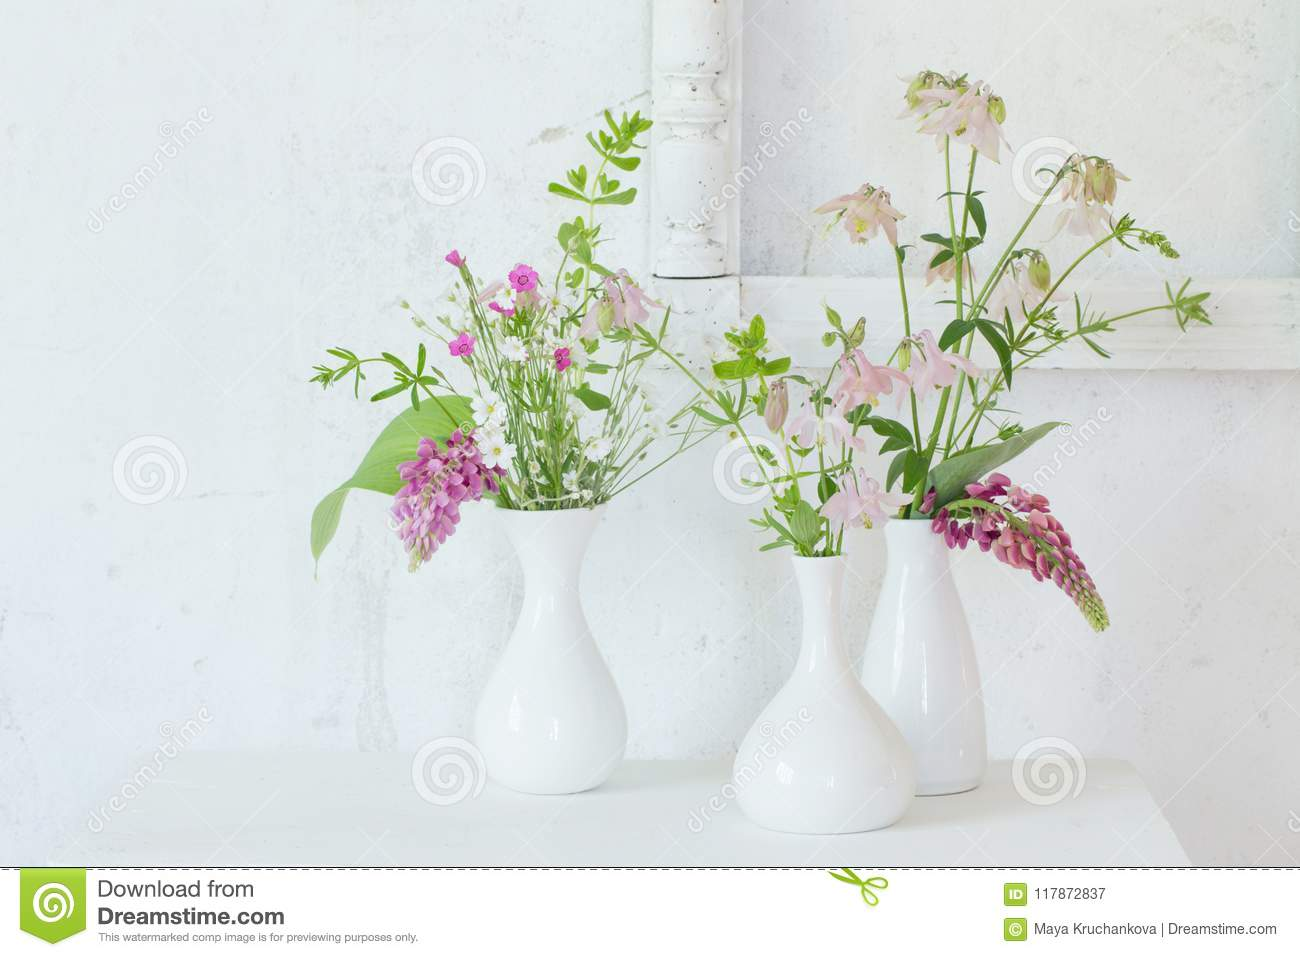 Dreamstime.com & Flowers In Vases On Background Old White Wall Stock Image - Image of ...